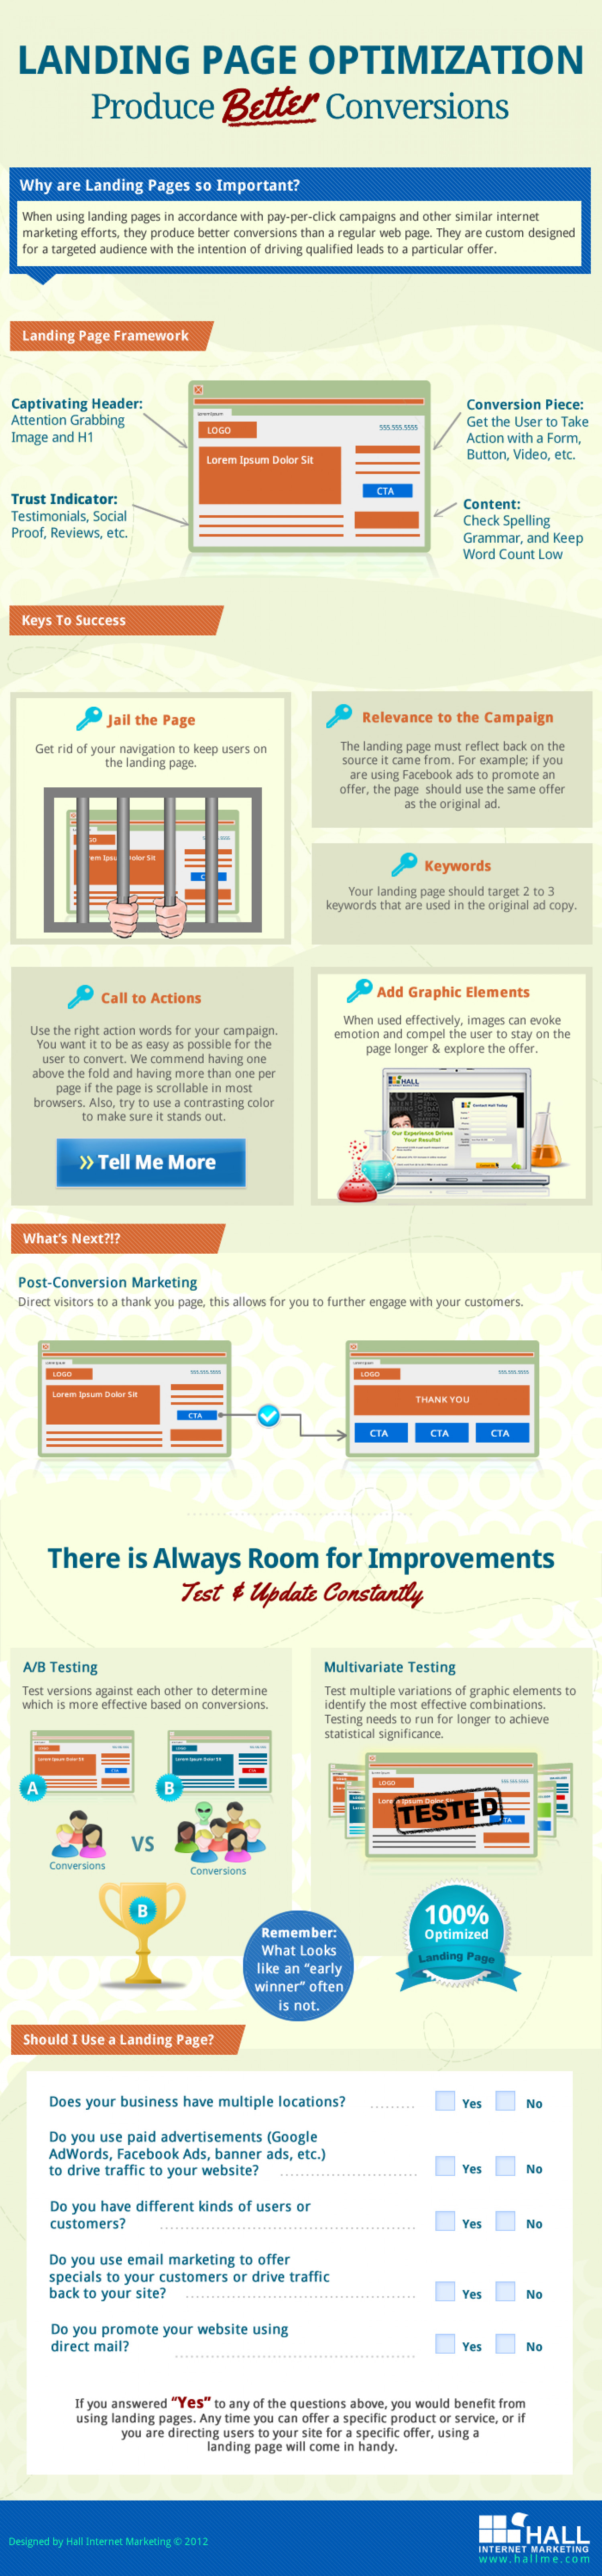 Landing Page Optimization - Produce Better Conversions Infographic